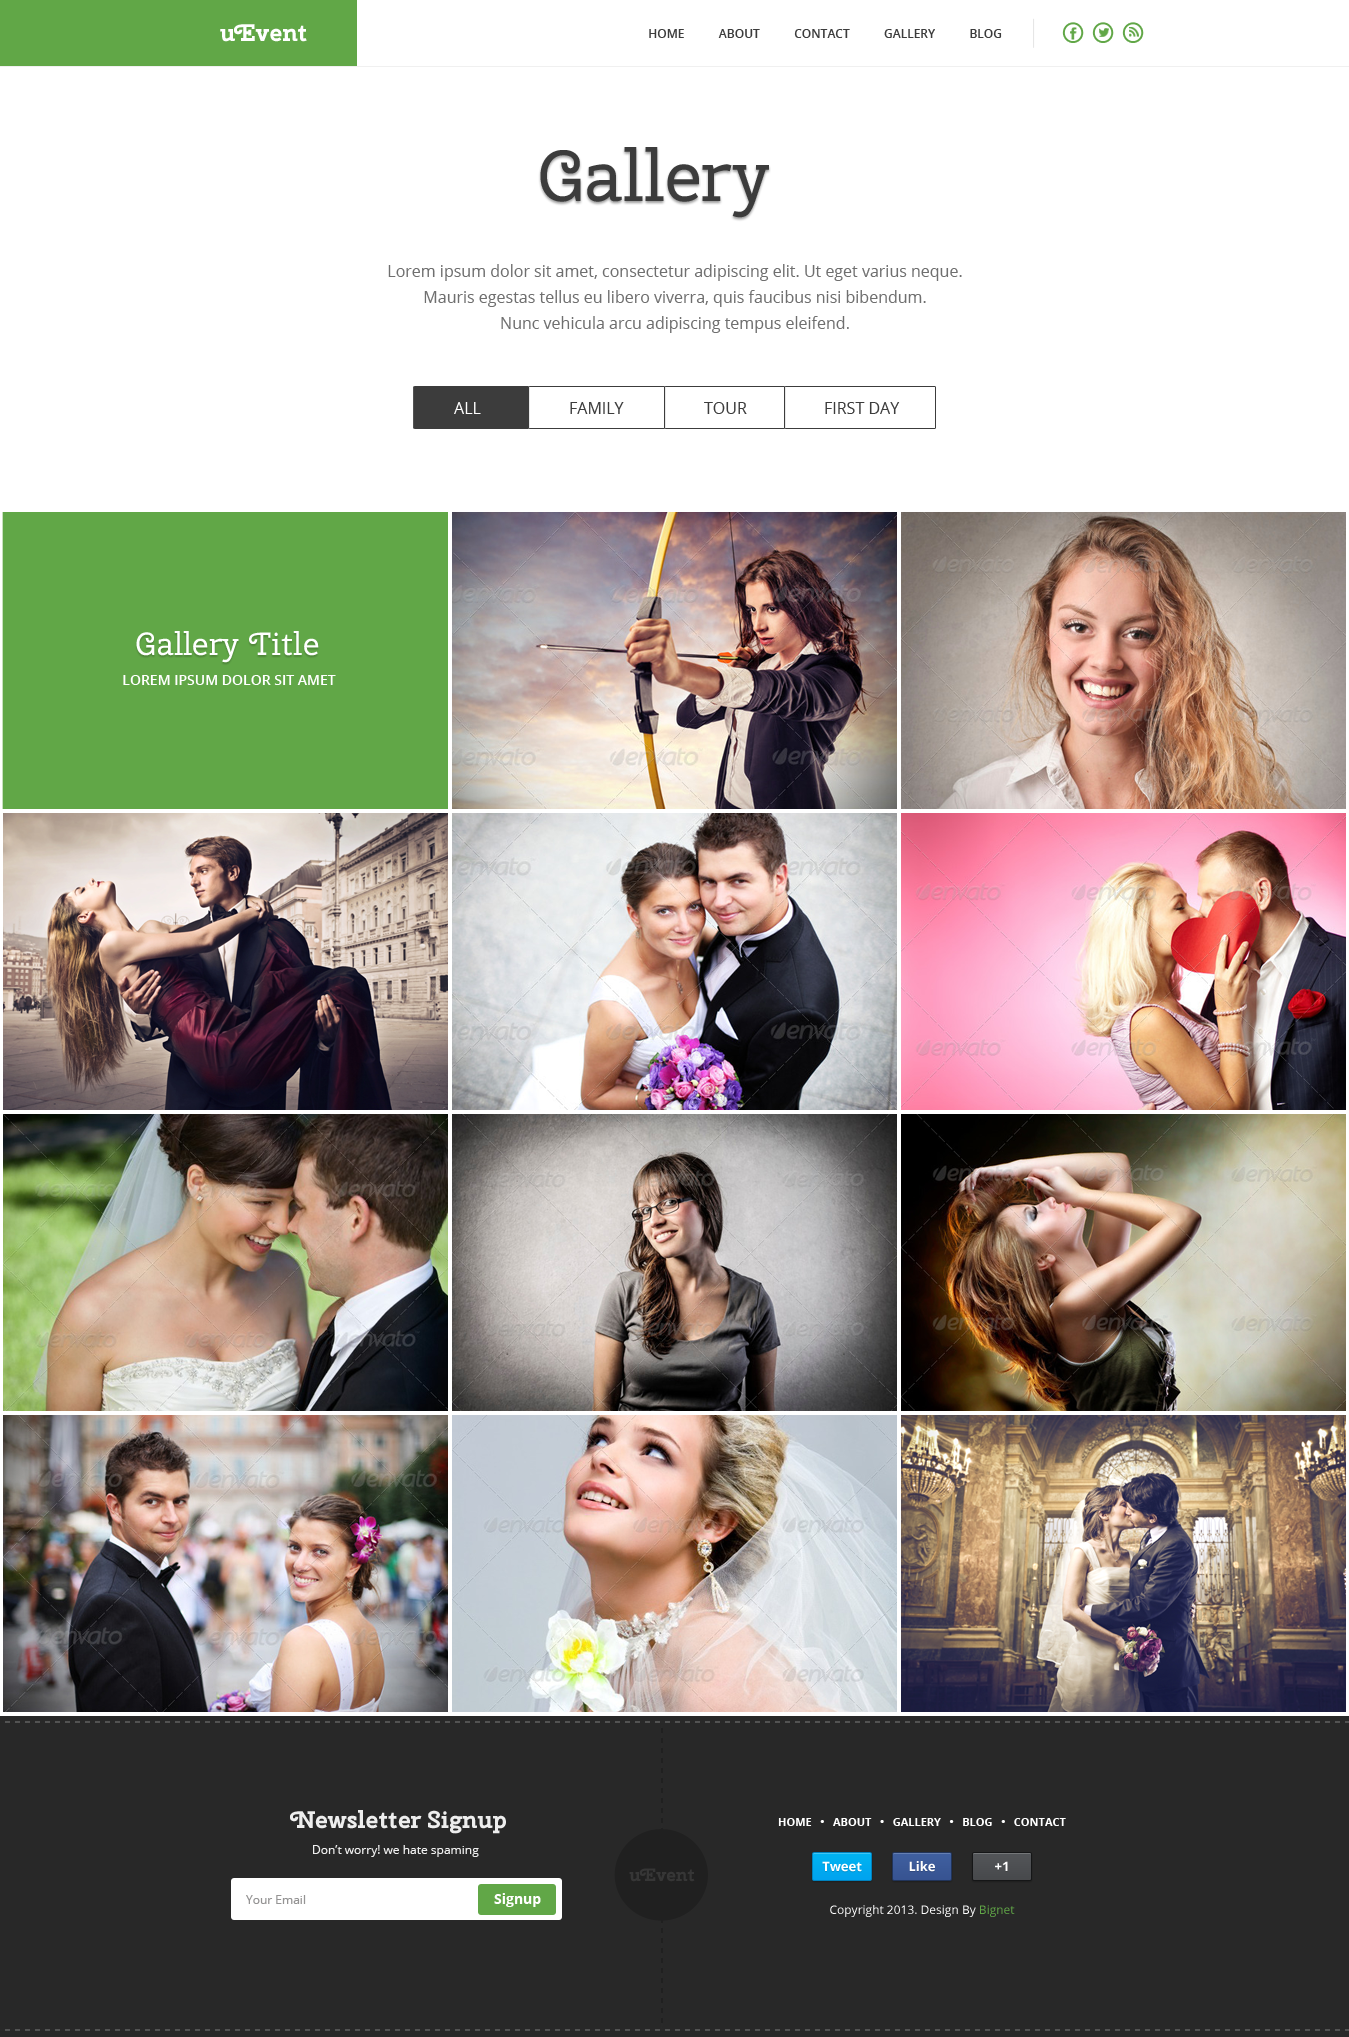 uEvent - Event & Wedding Template